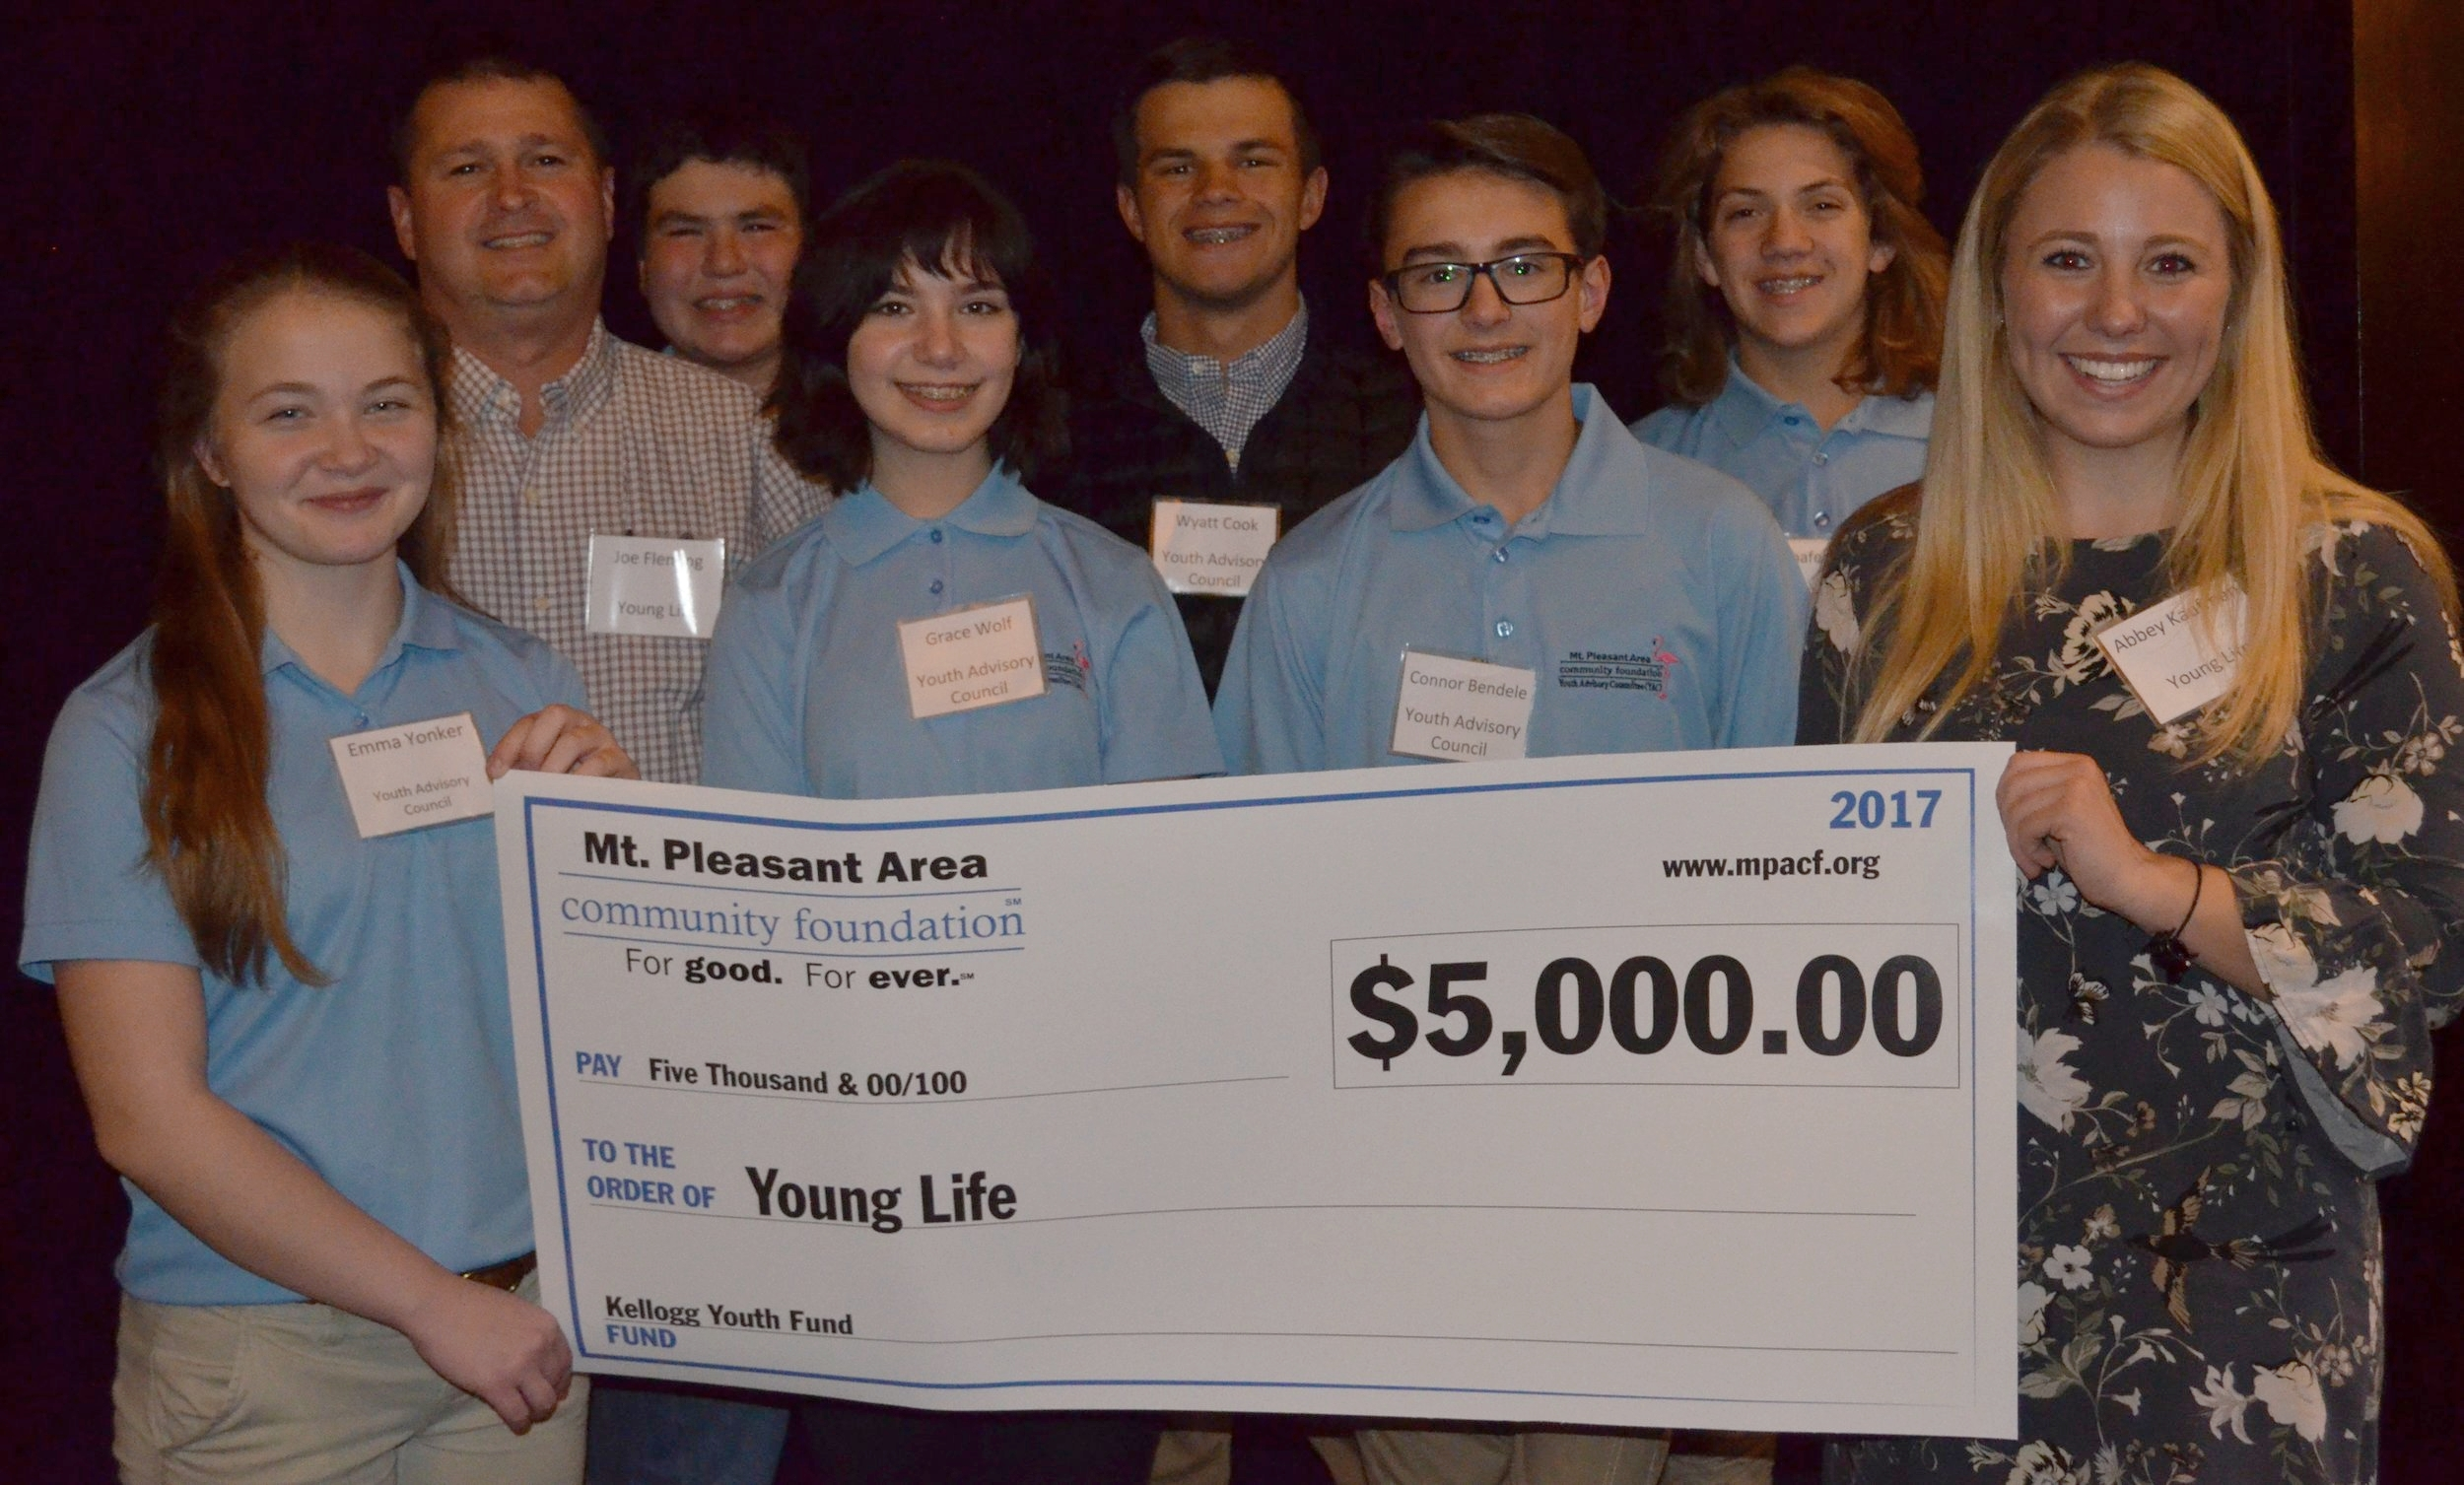 Members of the MPACF Youth Advisory Committee present a check to representatives of Young Life to support a mentoring program for sixth grade students at Mt. Pleasant Middle School.